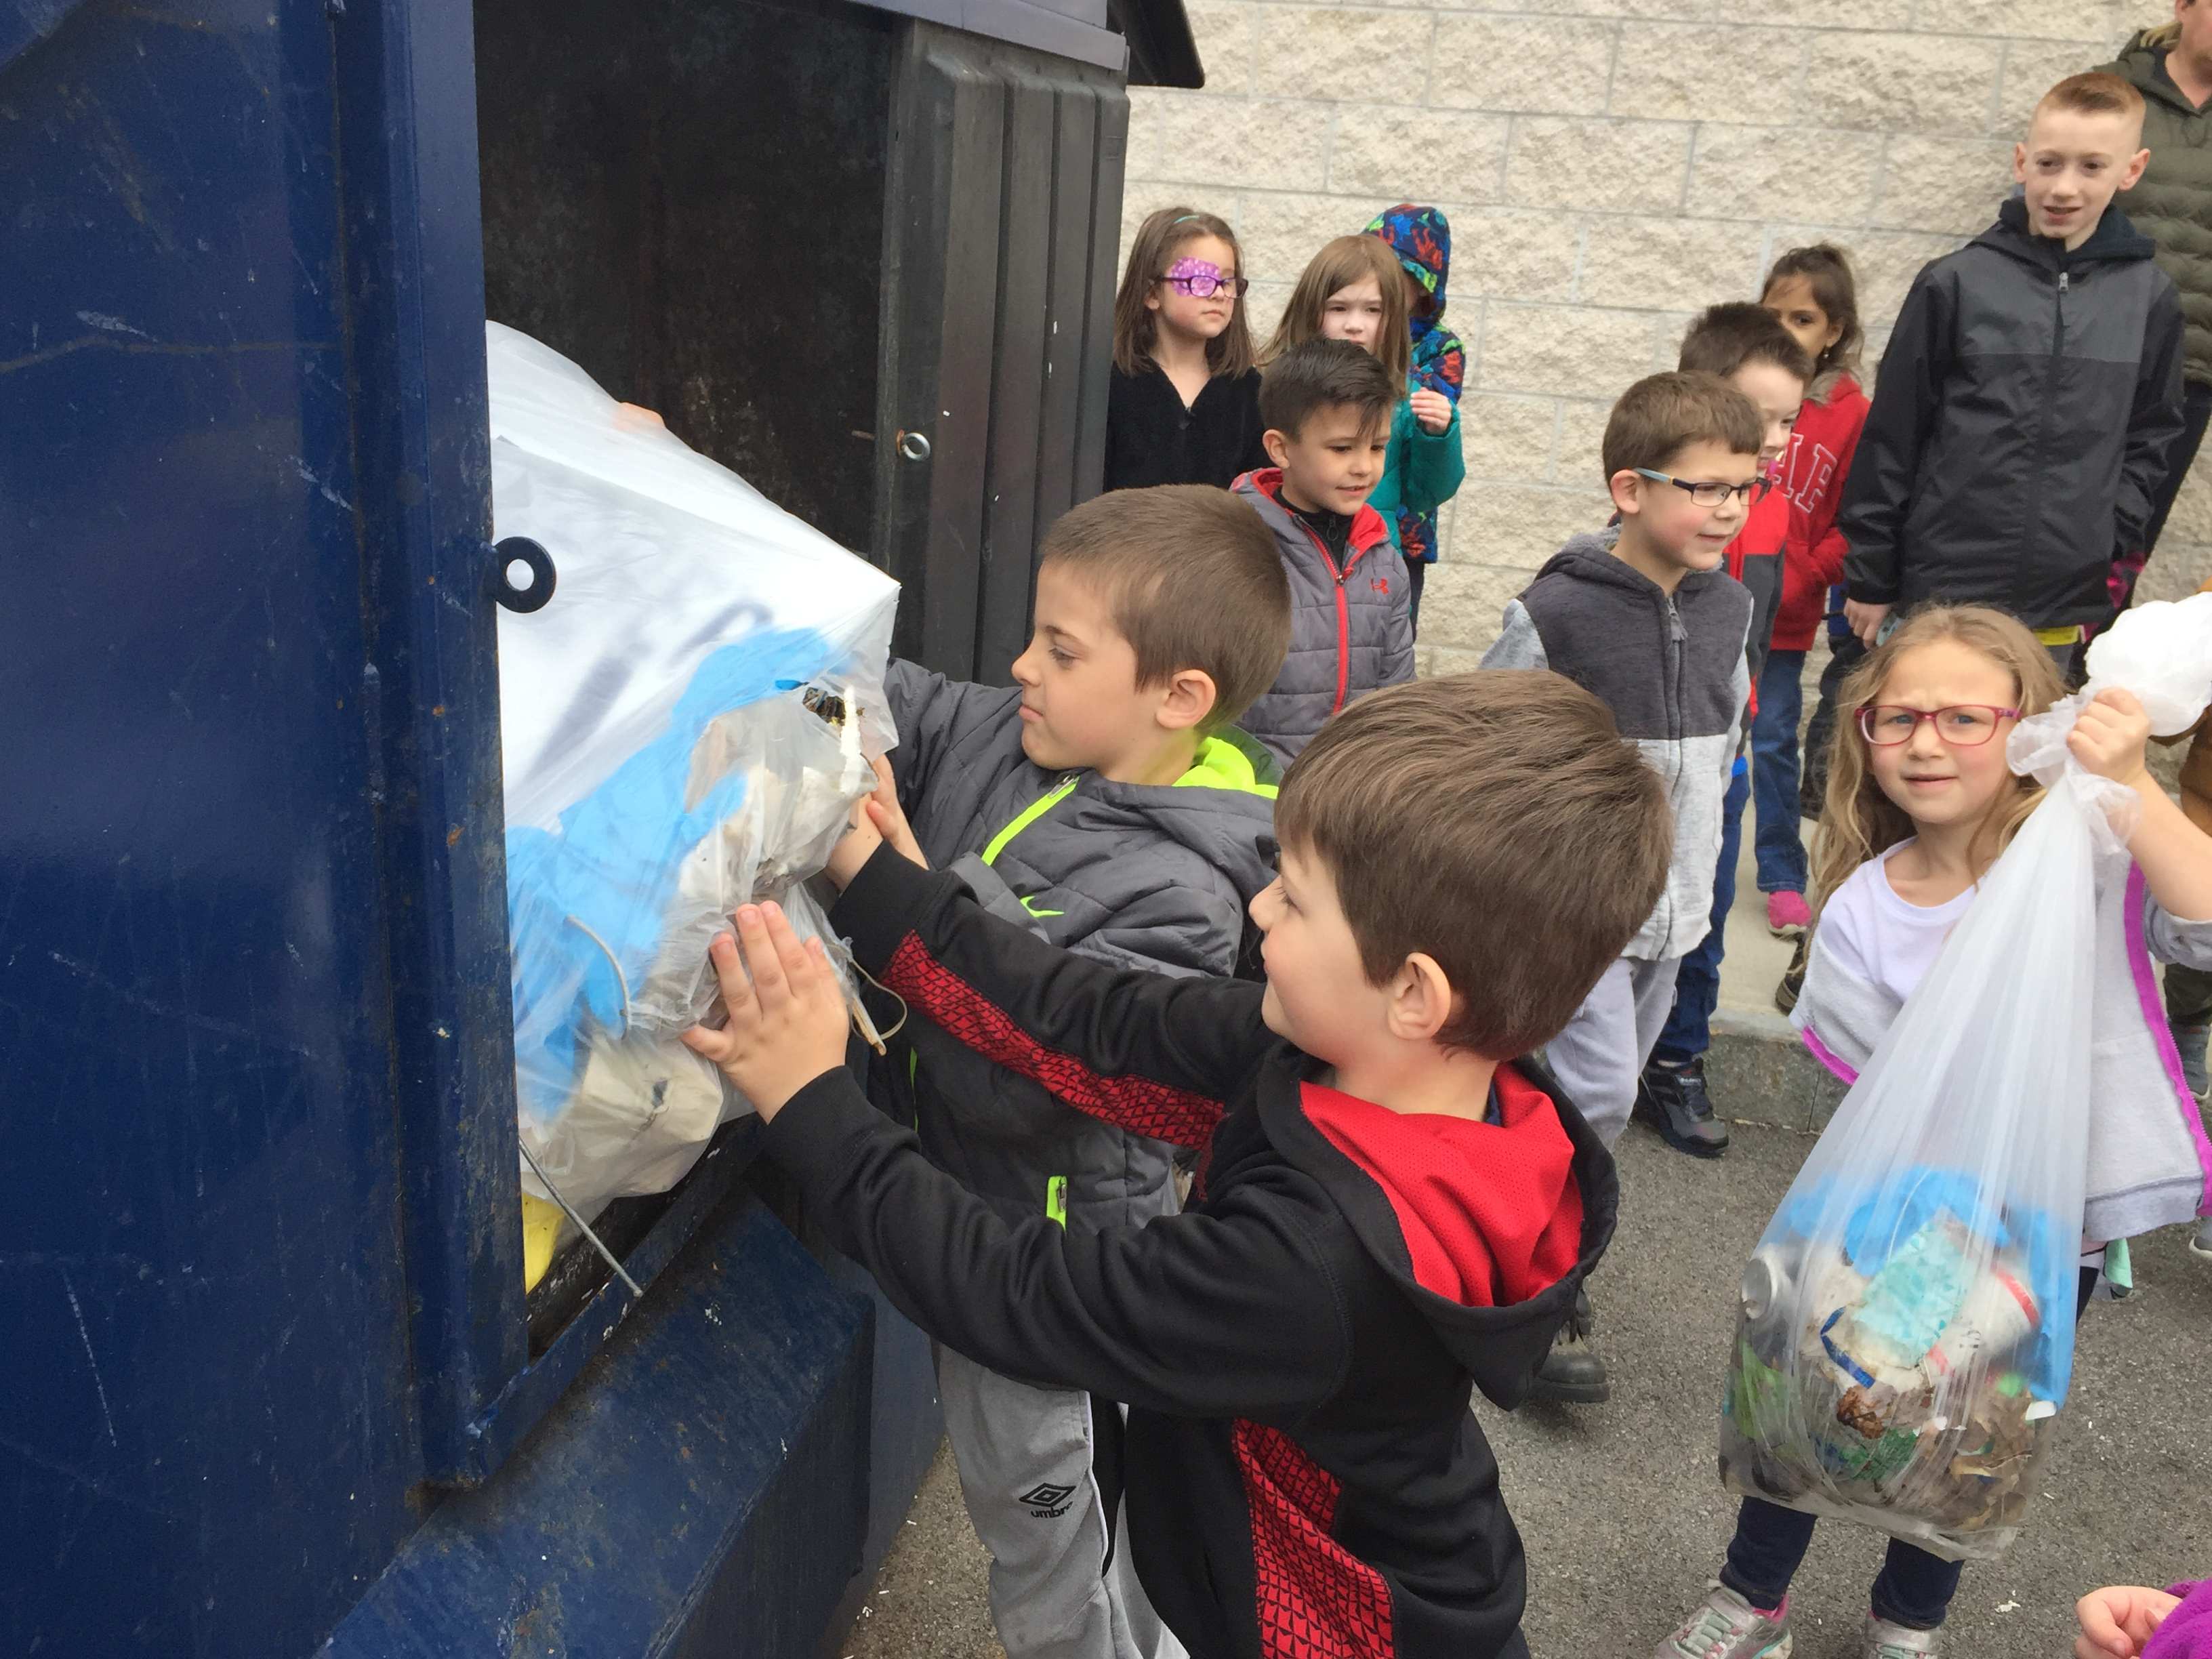 children put trash into a trash dumpster